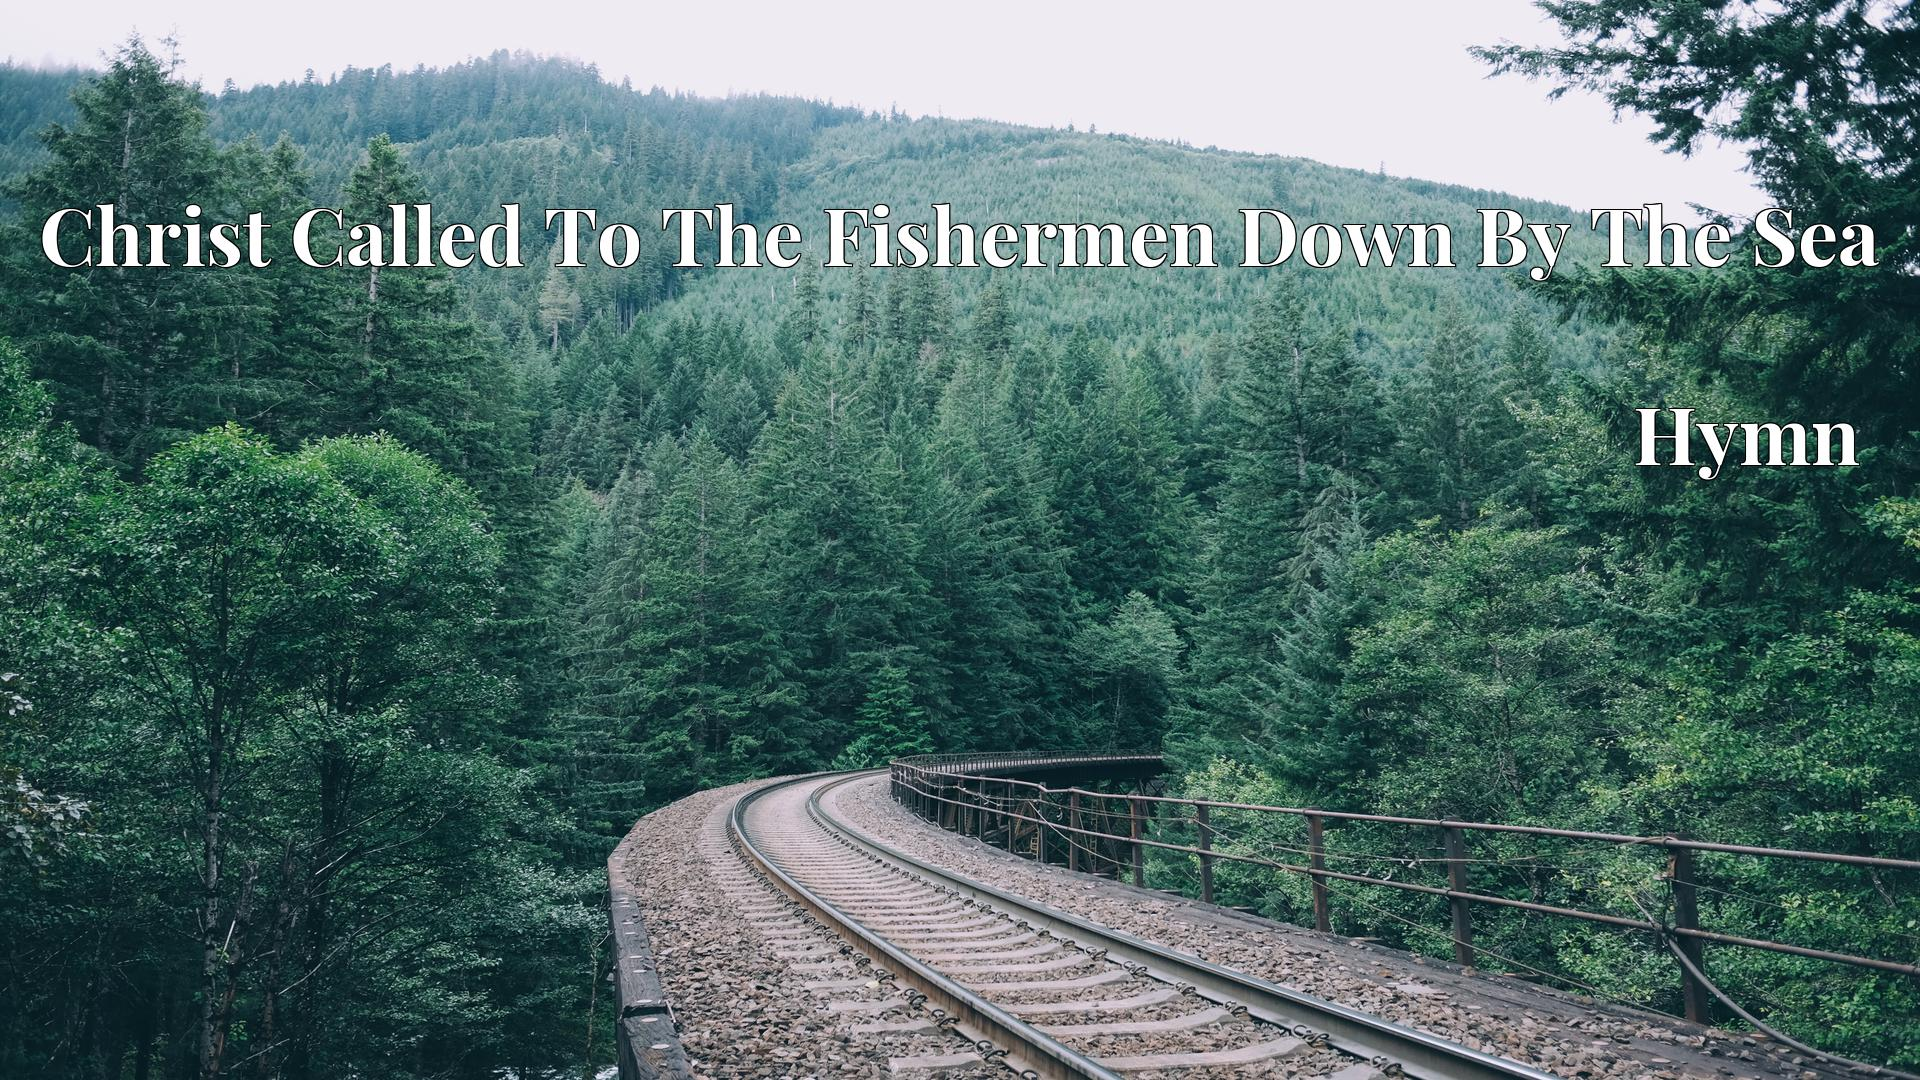 Christ Called To The Fishermen Down By The Sea - Hymn